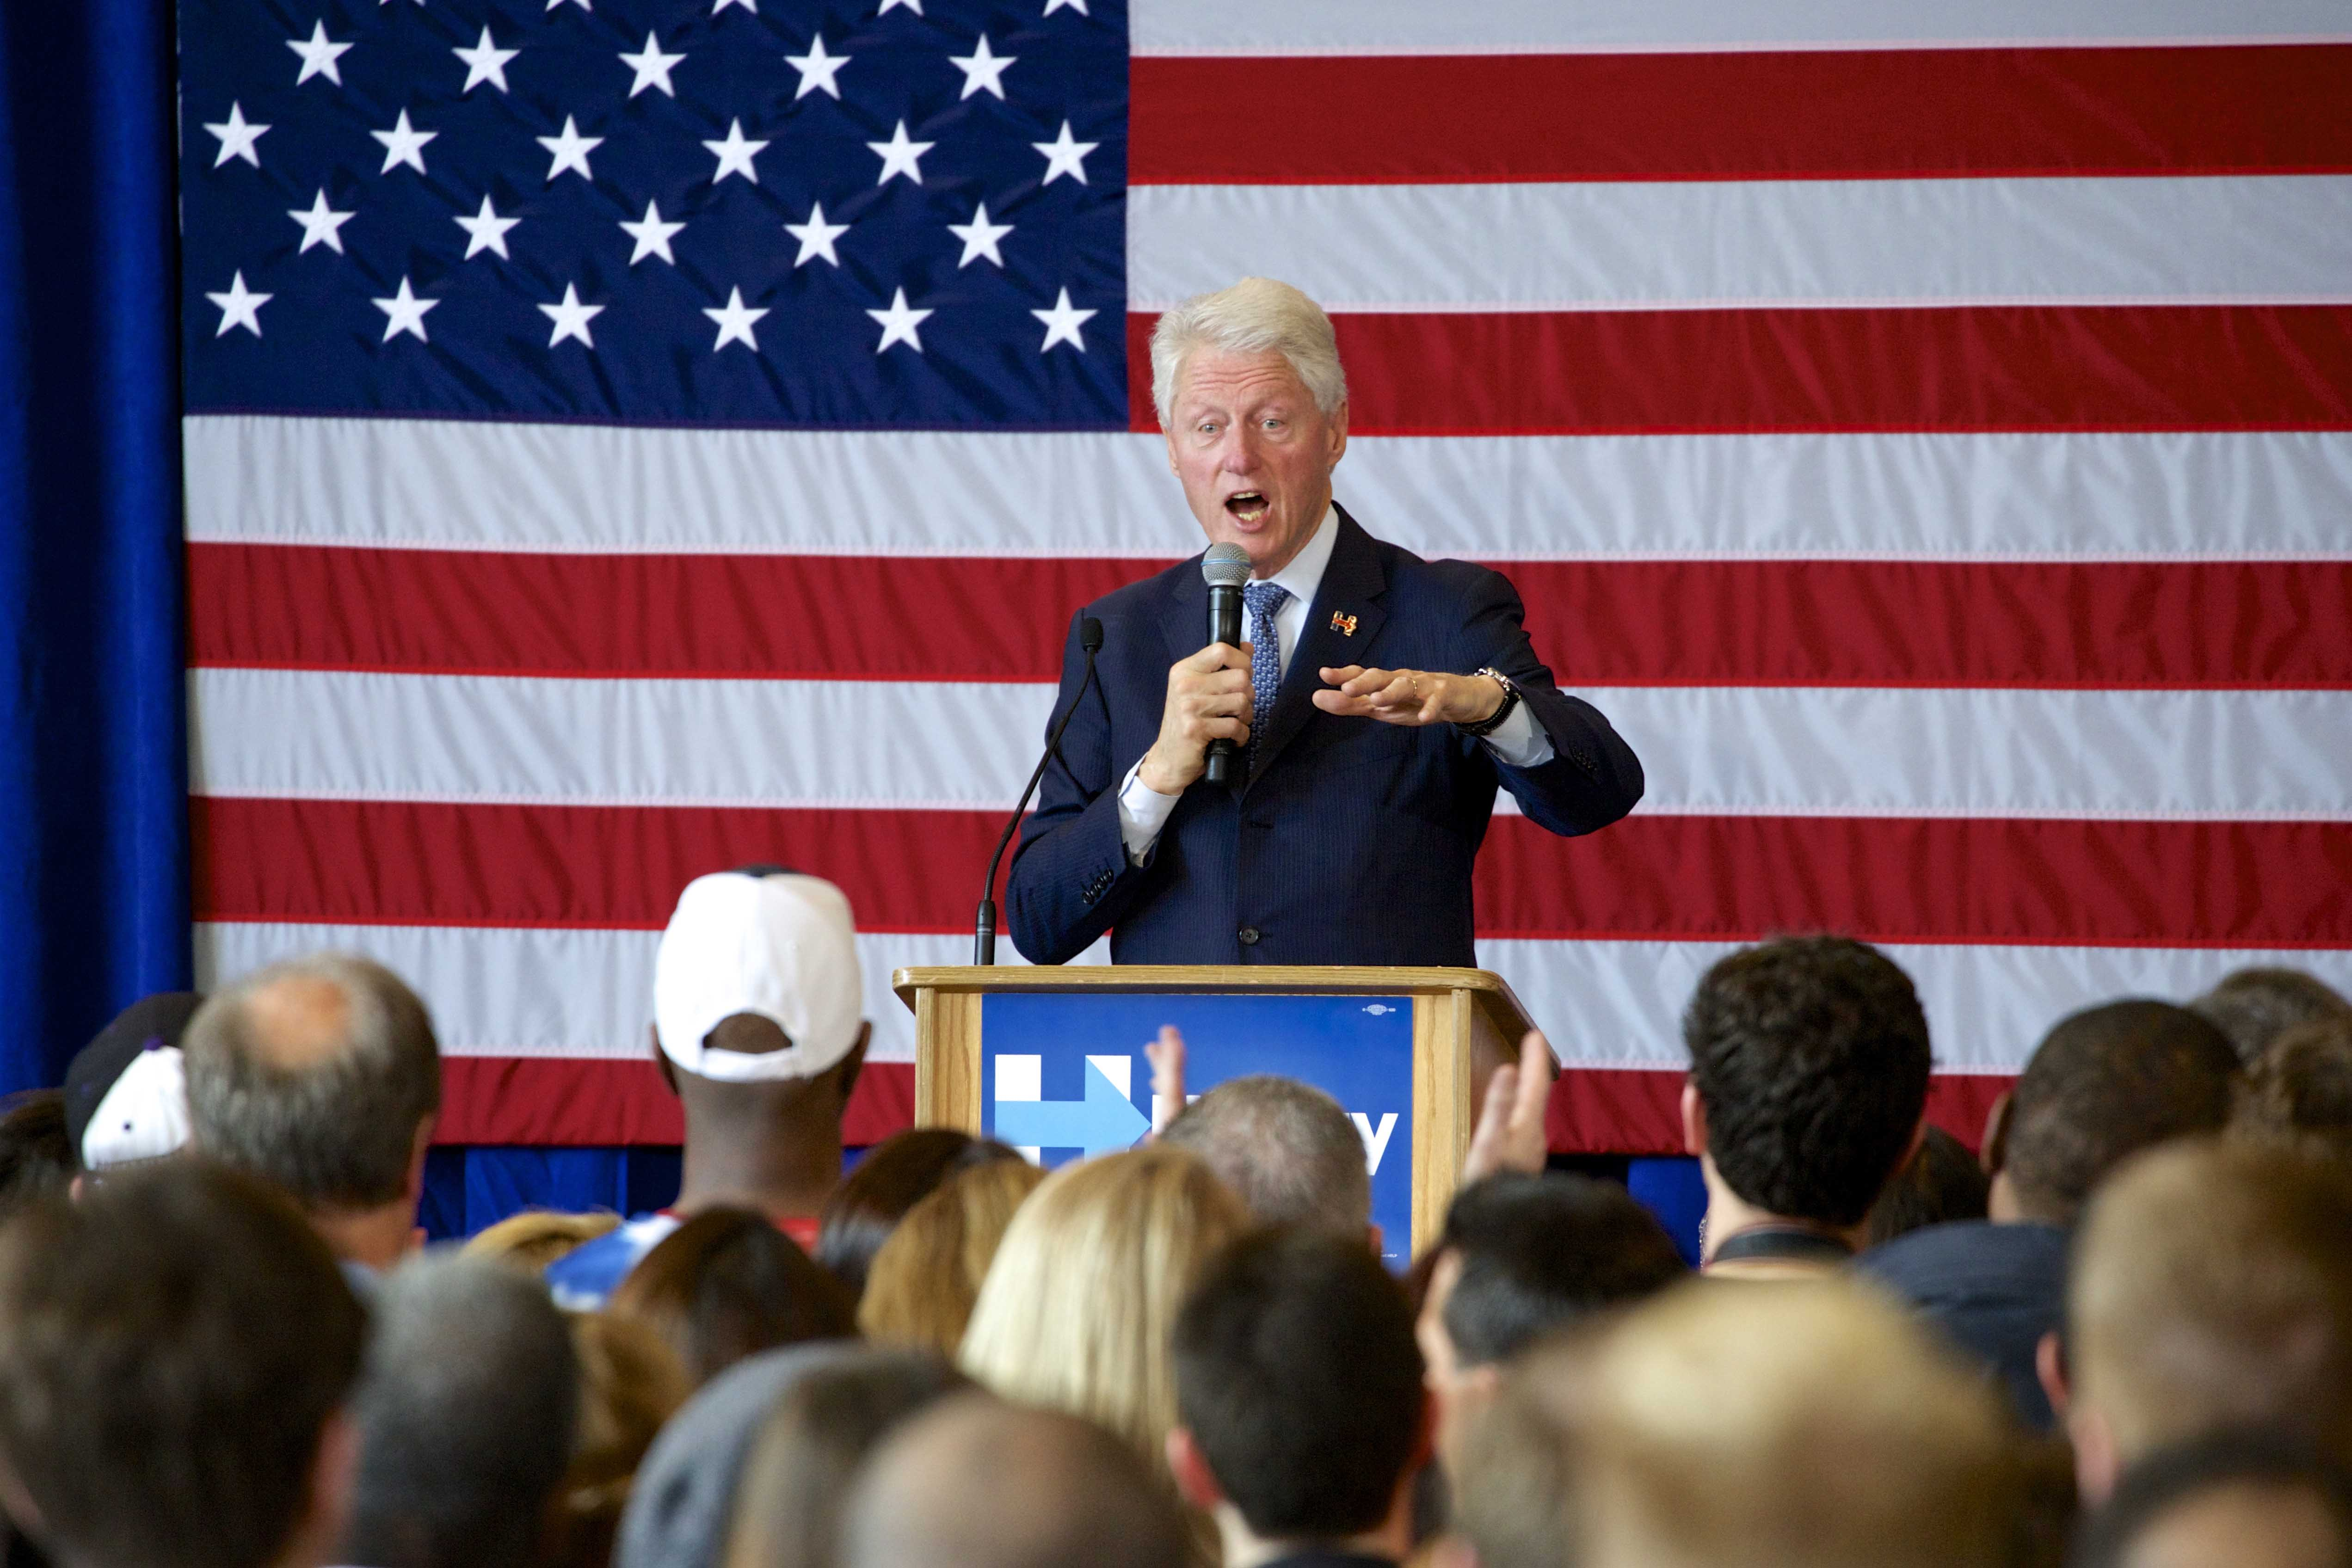 Bill Clinton speaks at the Beth Emet Synagogue, 1224 Dempster St., at a campaign event for his wife Hillary Clinton. The Illinois primary will take place on March 15.